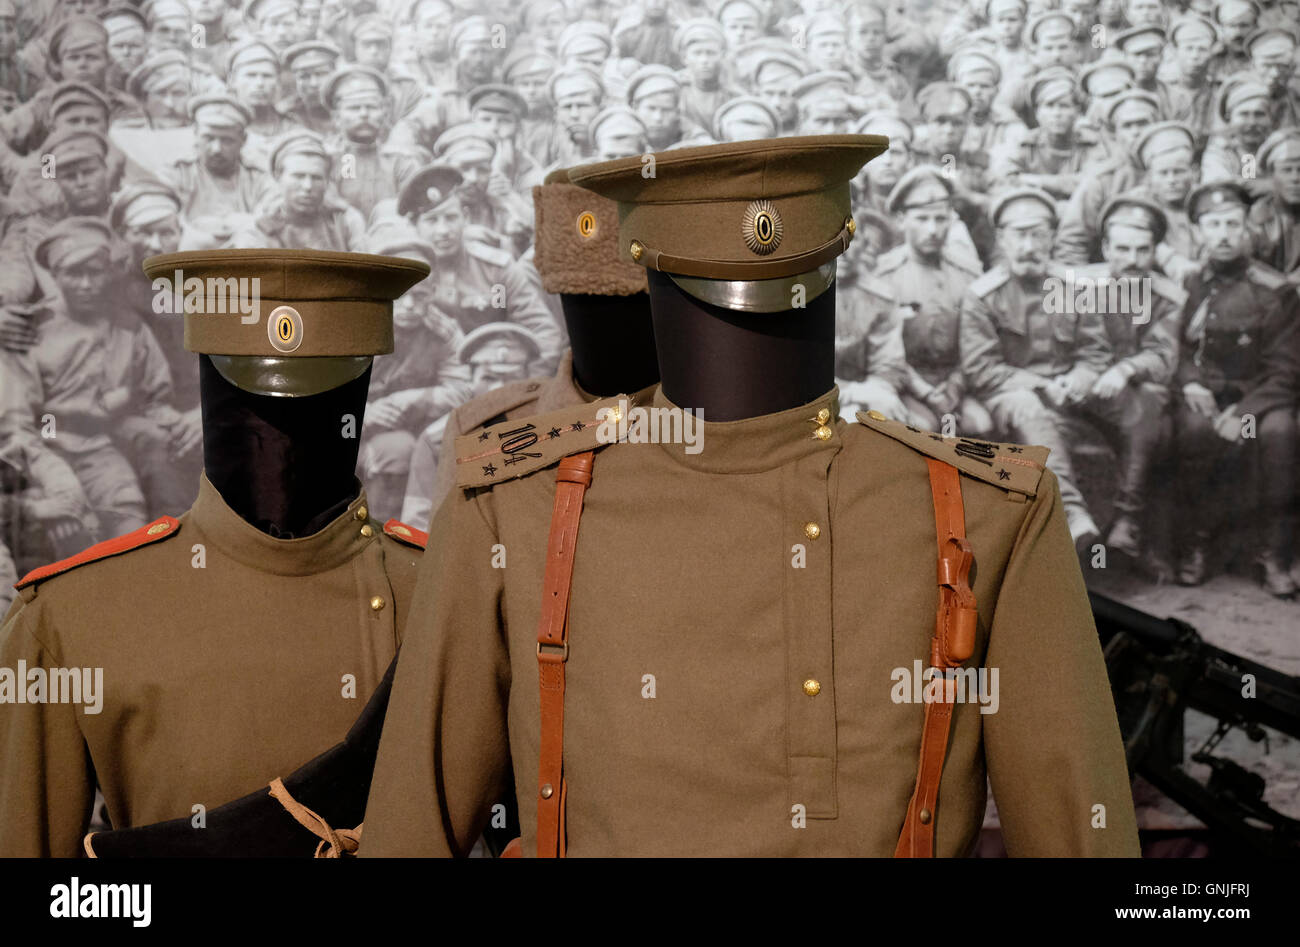 Exhibit at the State Central Museum of Contemporary History of Russia in Moscow Russia - Stock Image